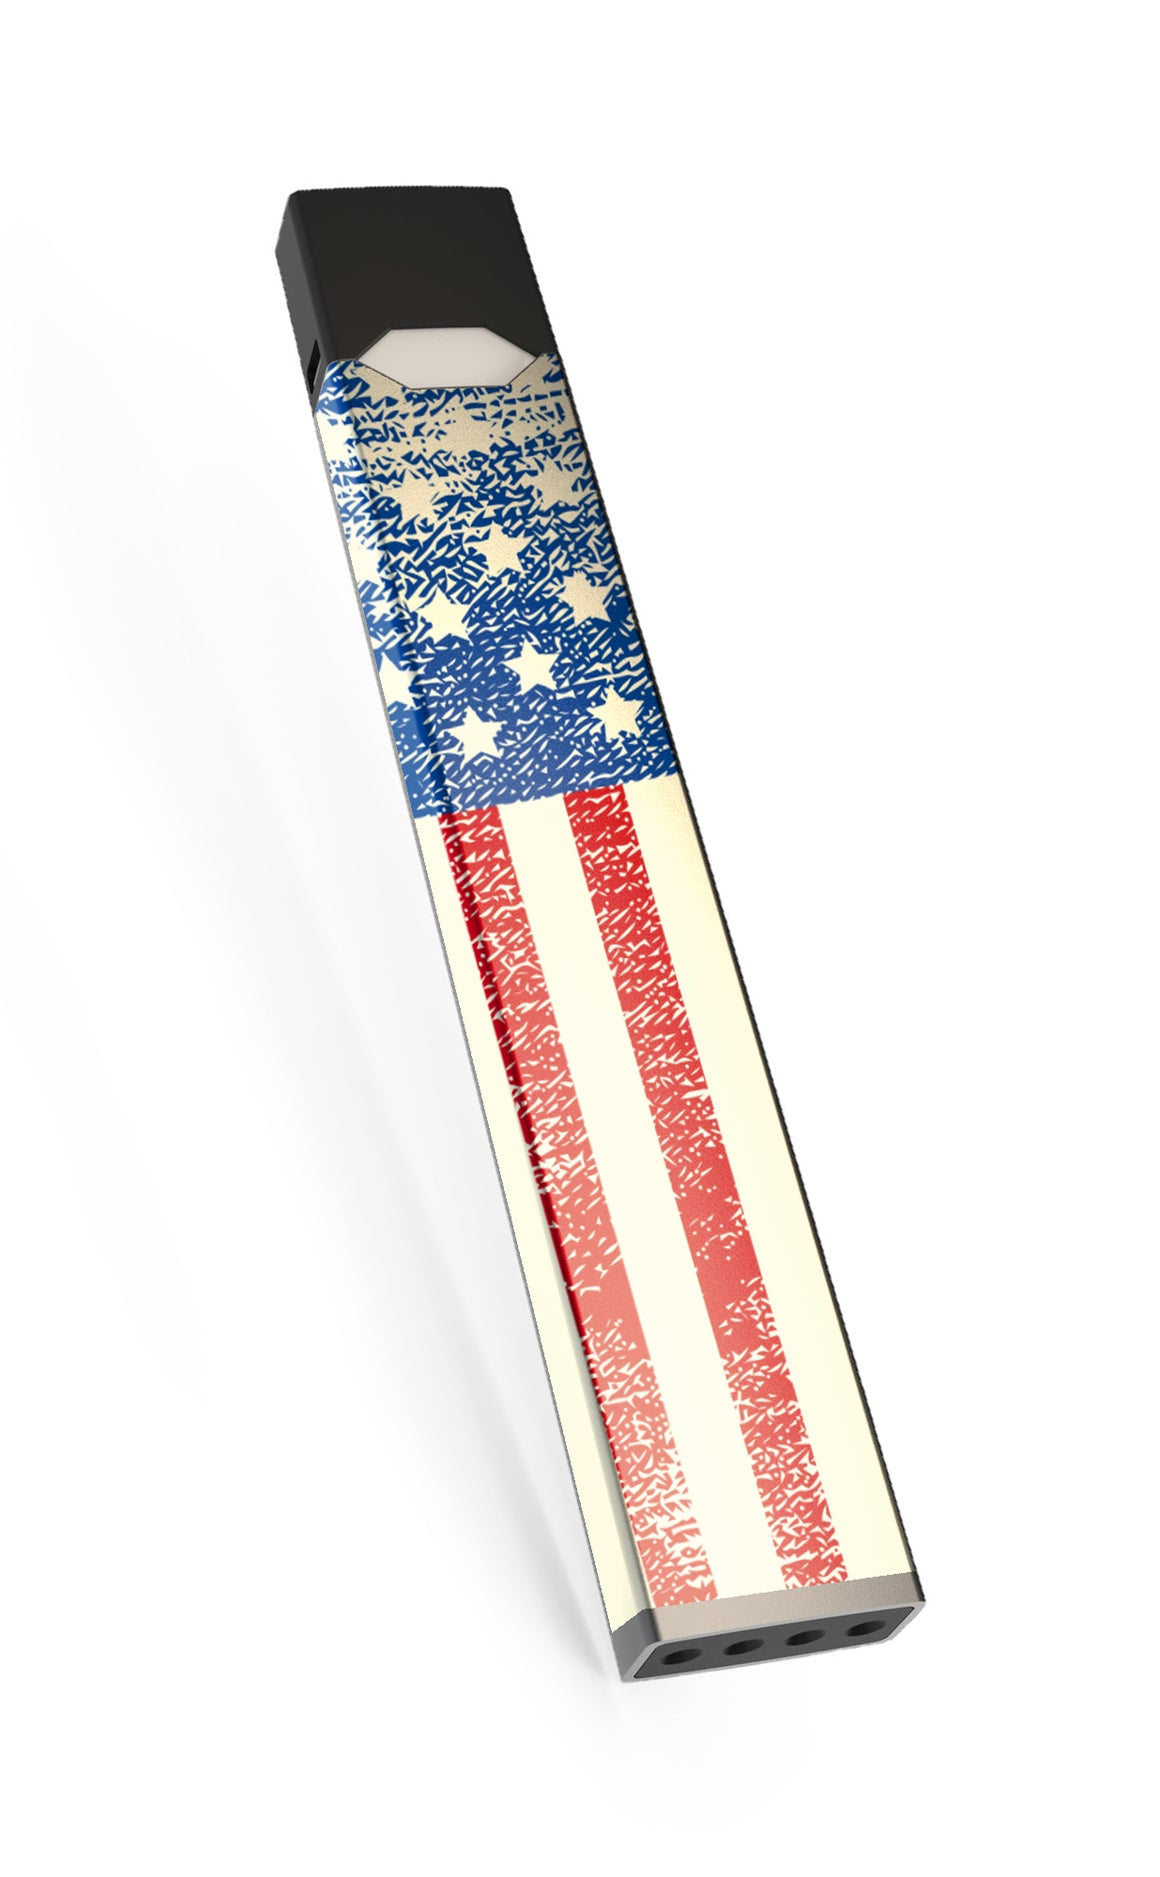 'Merica - Graphic Skin for JUUL